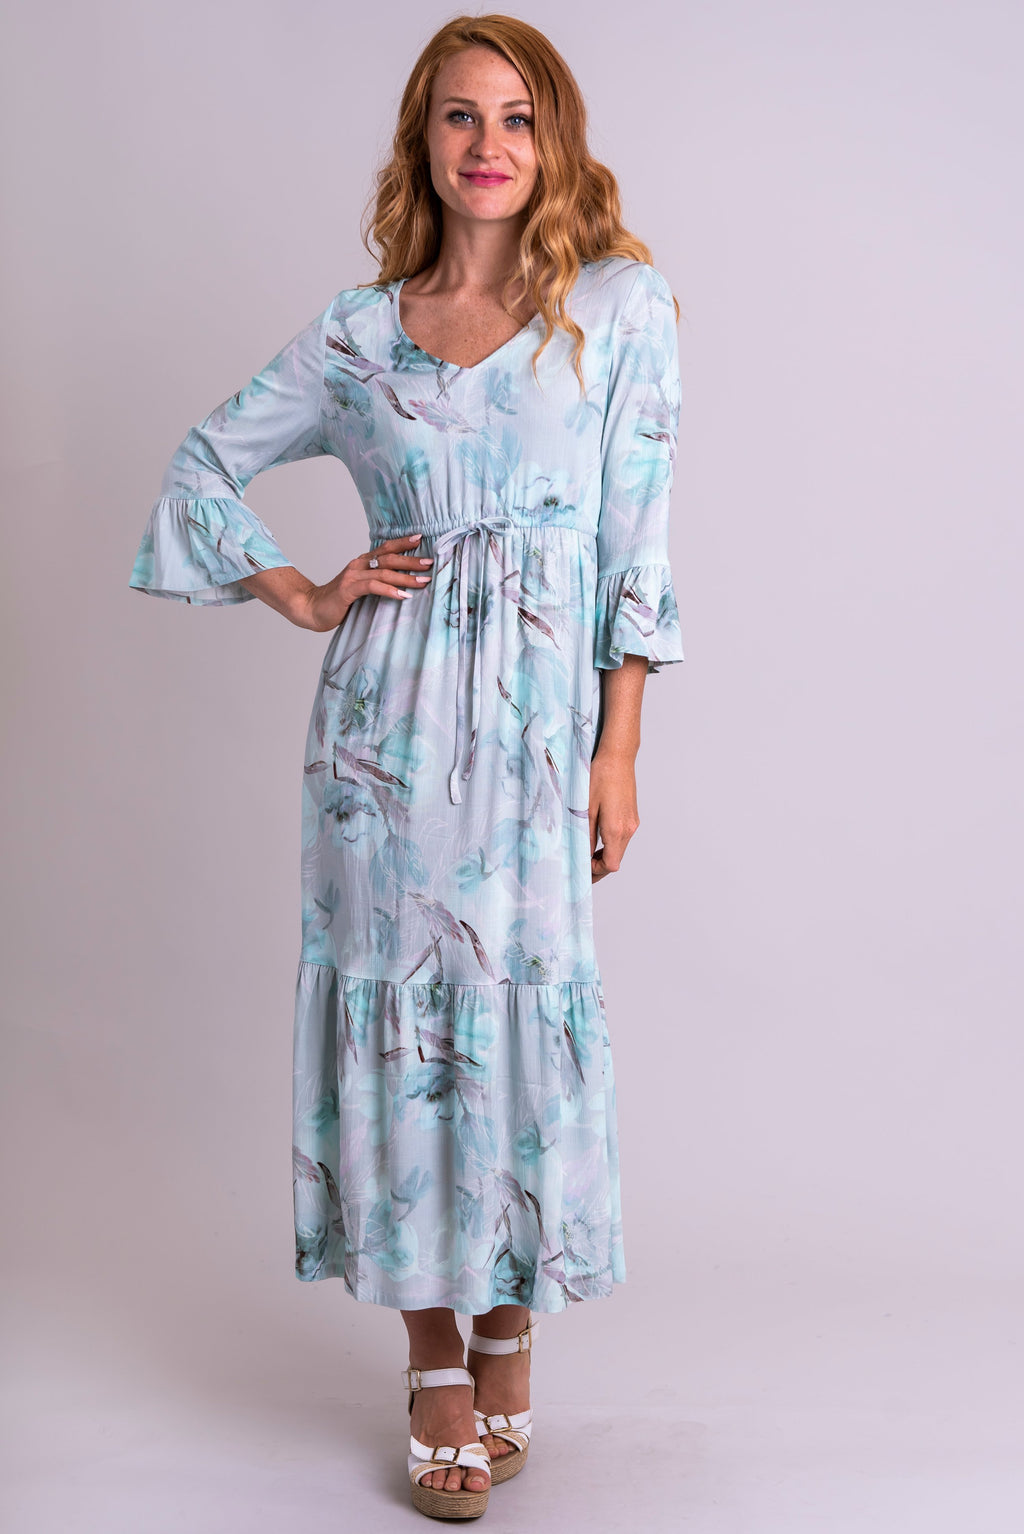 Muse Dress, Mintage, Linen Bamboo - Blue Sky Clothing Co